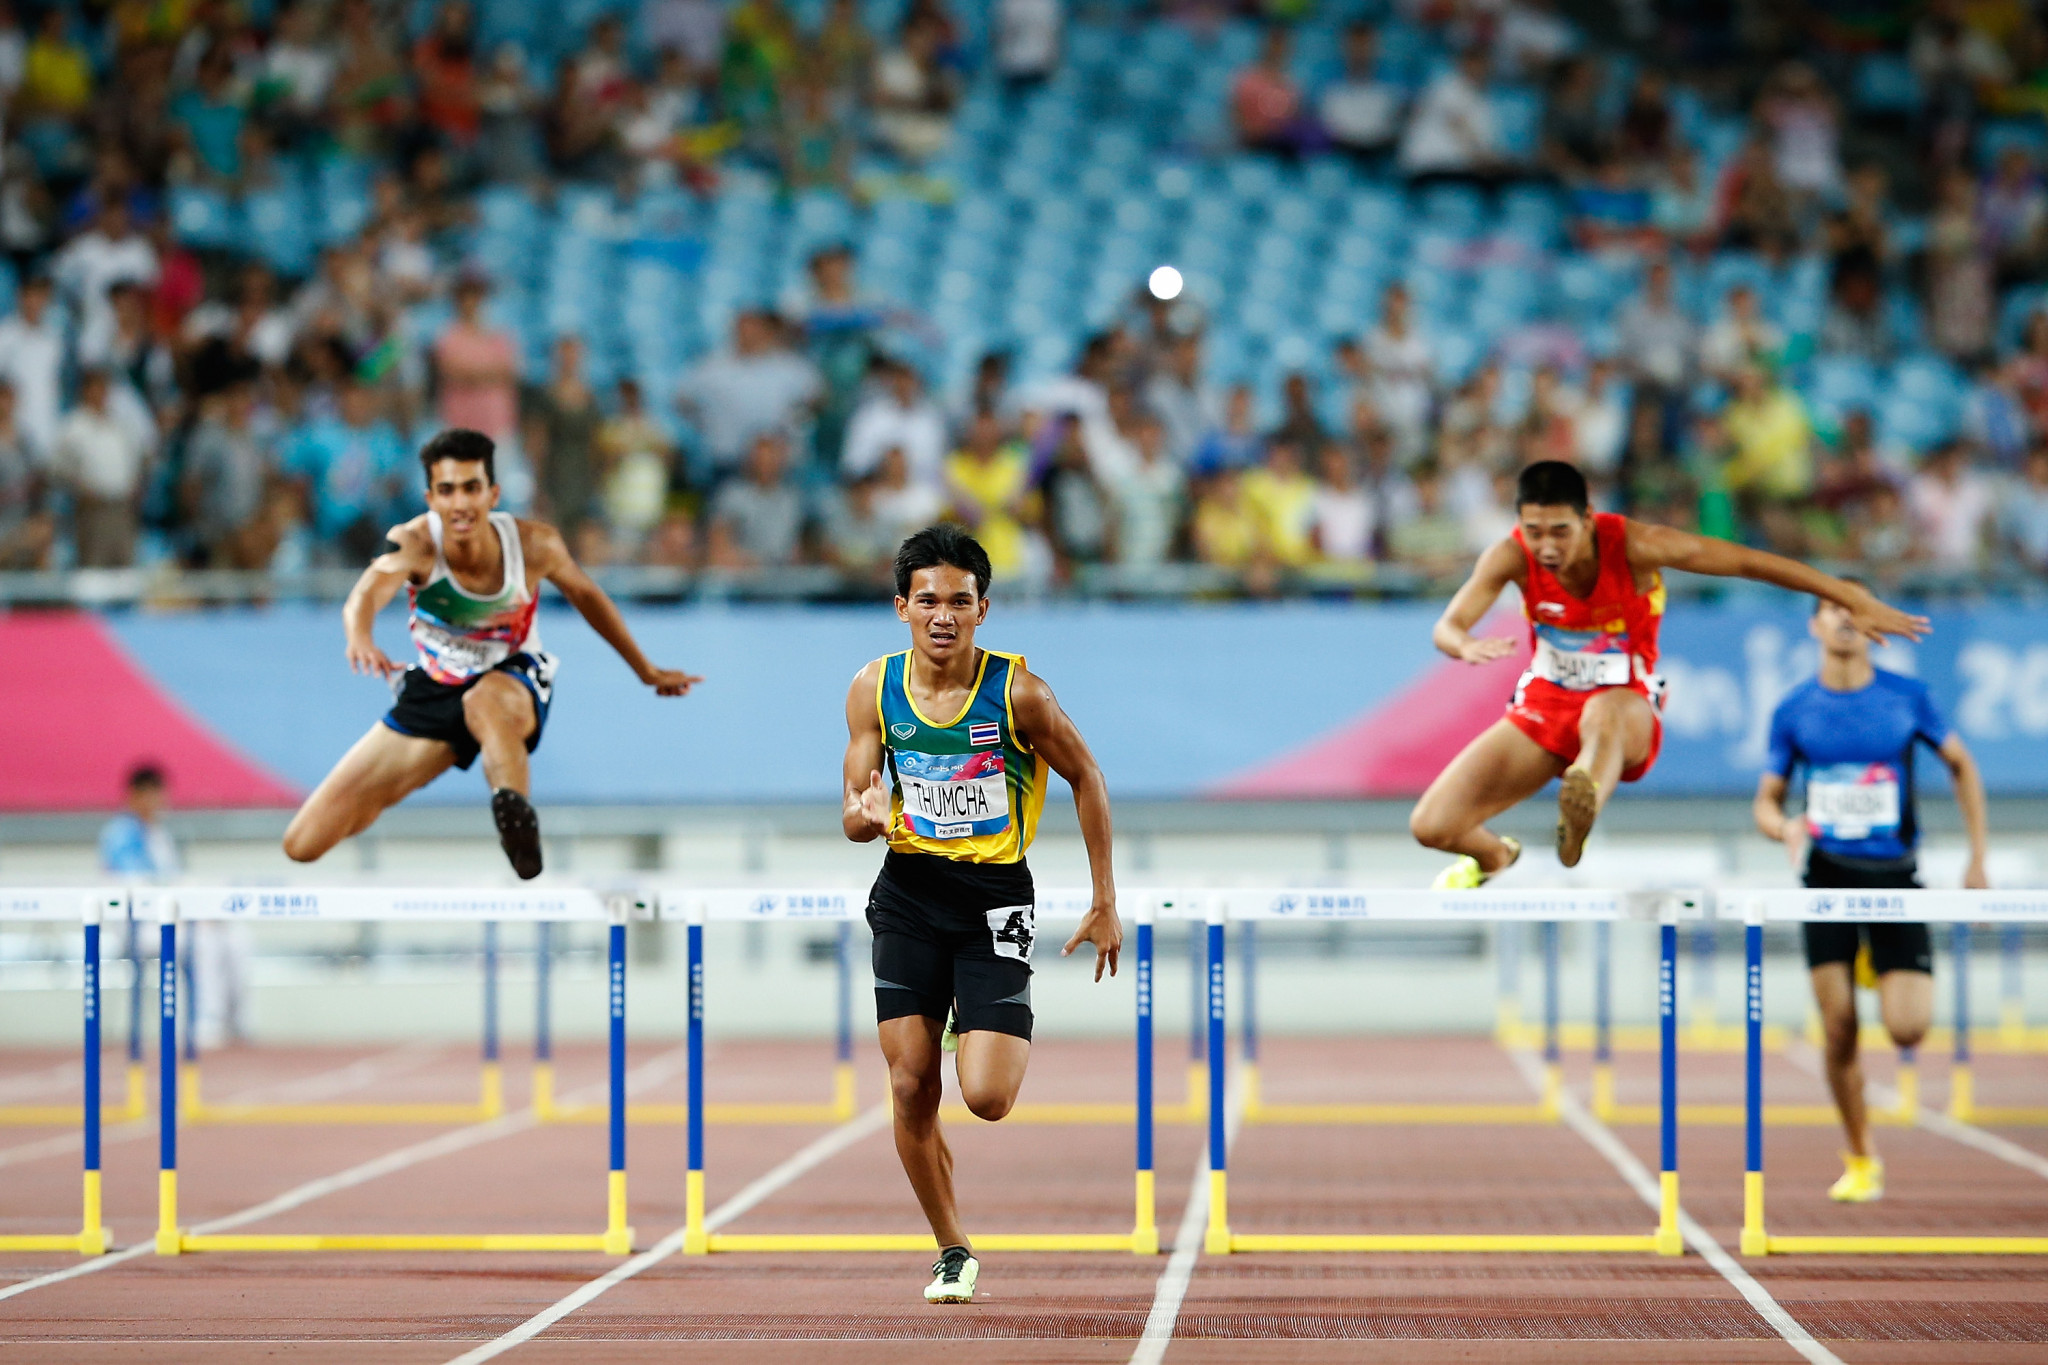 Nanjing in China hosted the last Asian Youth Games in 2013 ©Getty Images